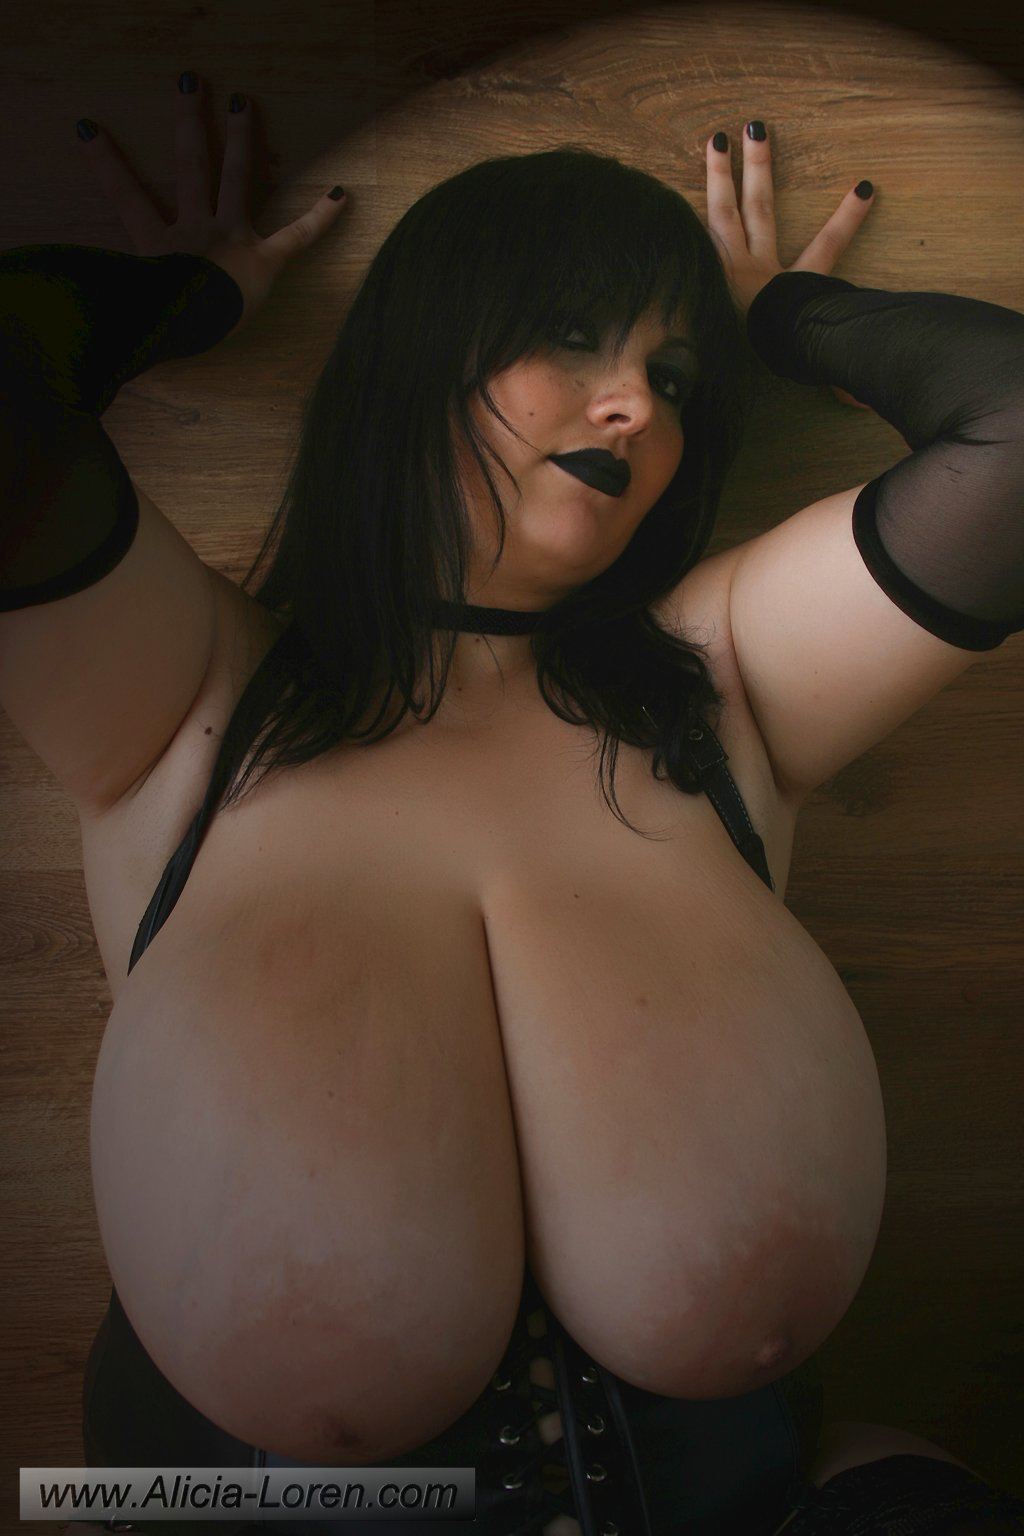 Bang that pussy hard in hd